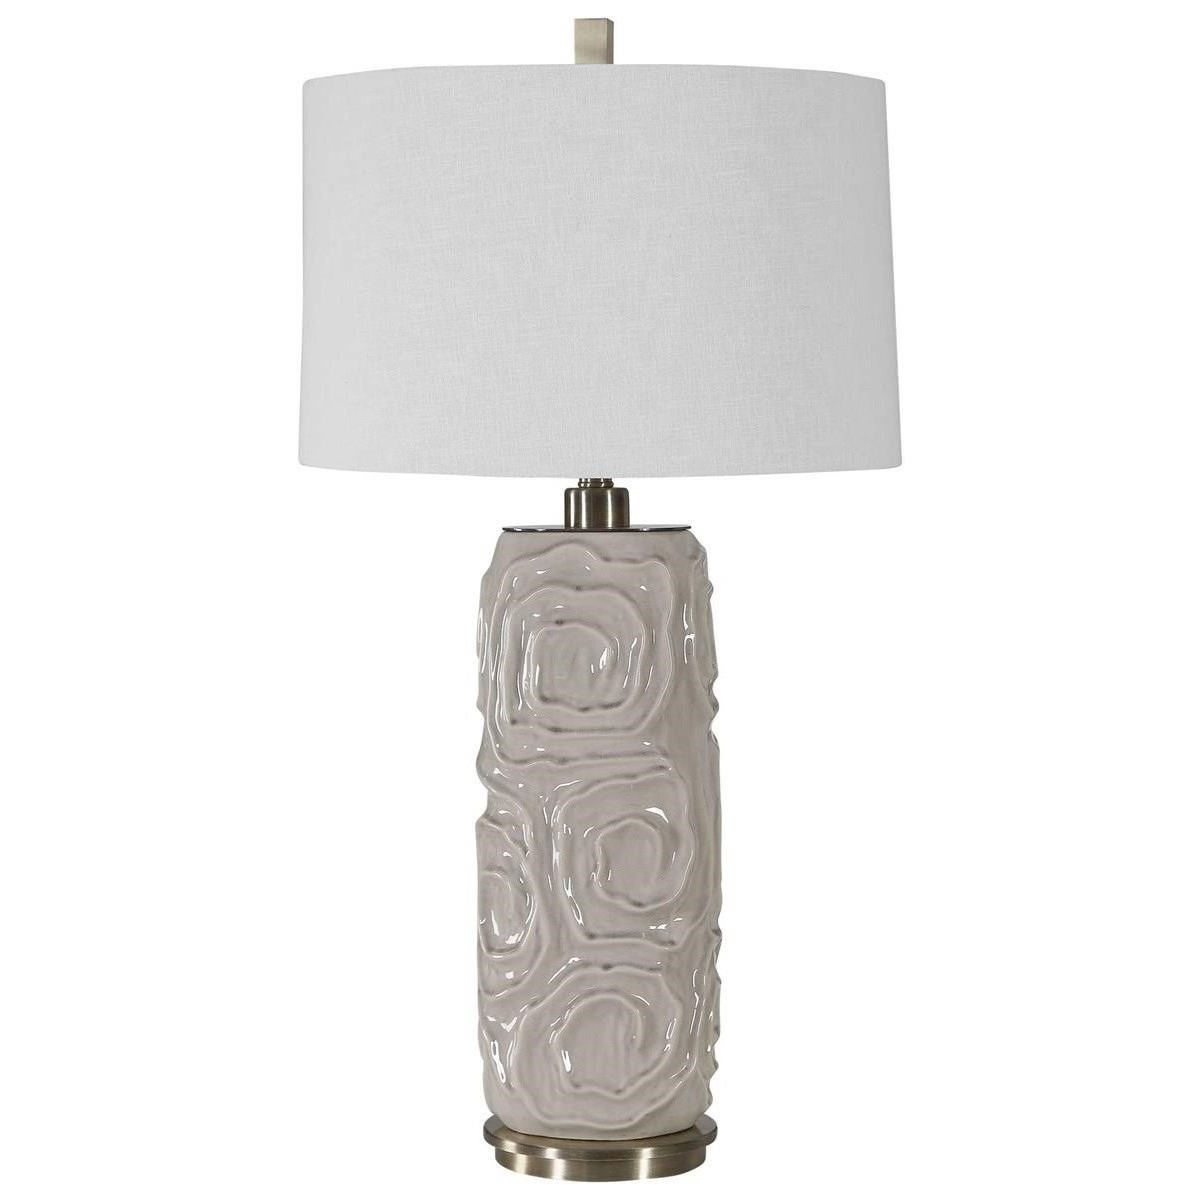 Zade Warm Gray Table Lamp